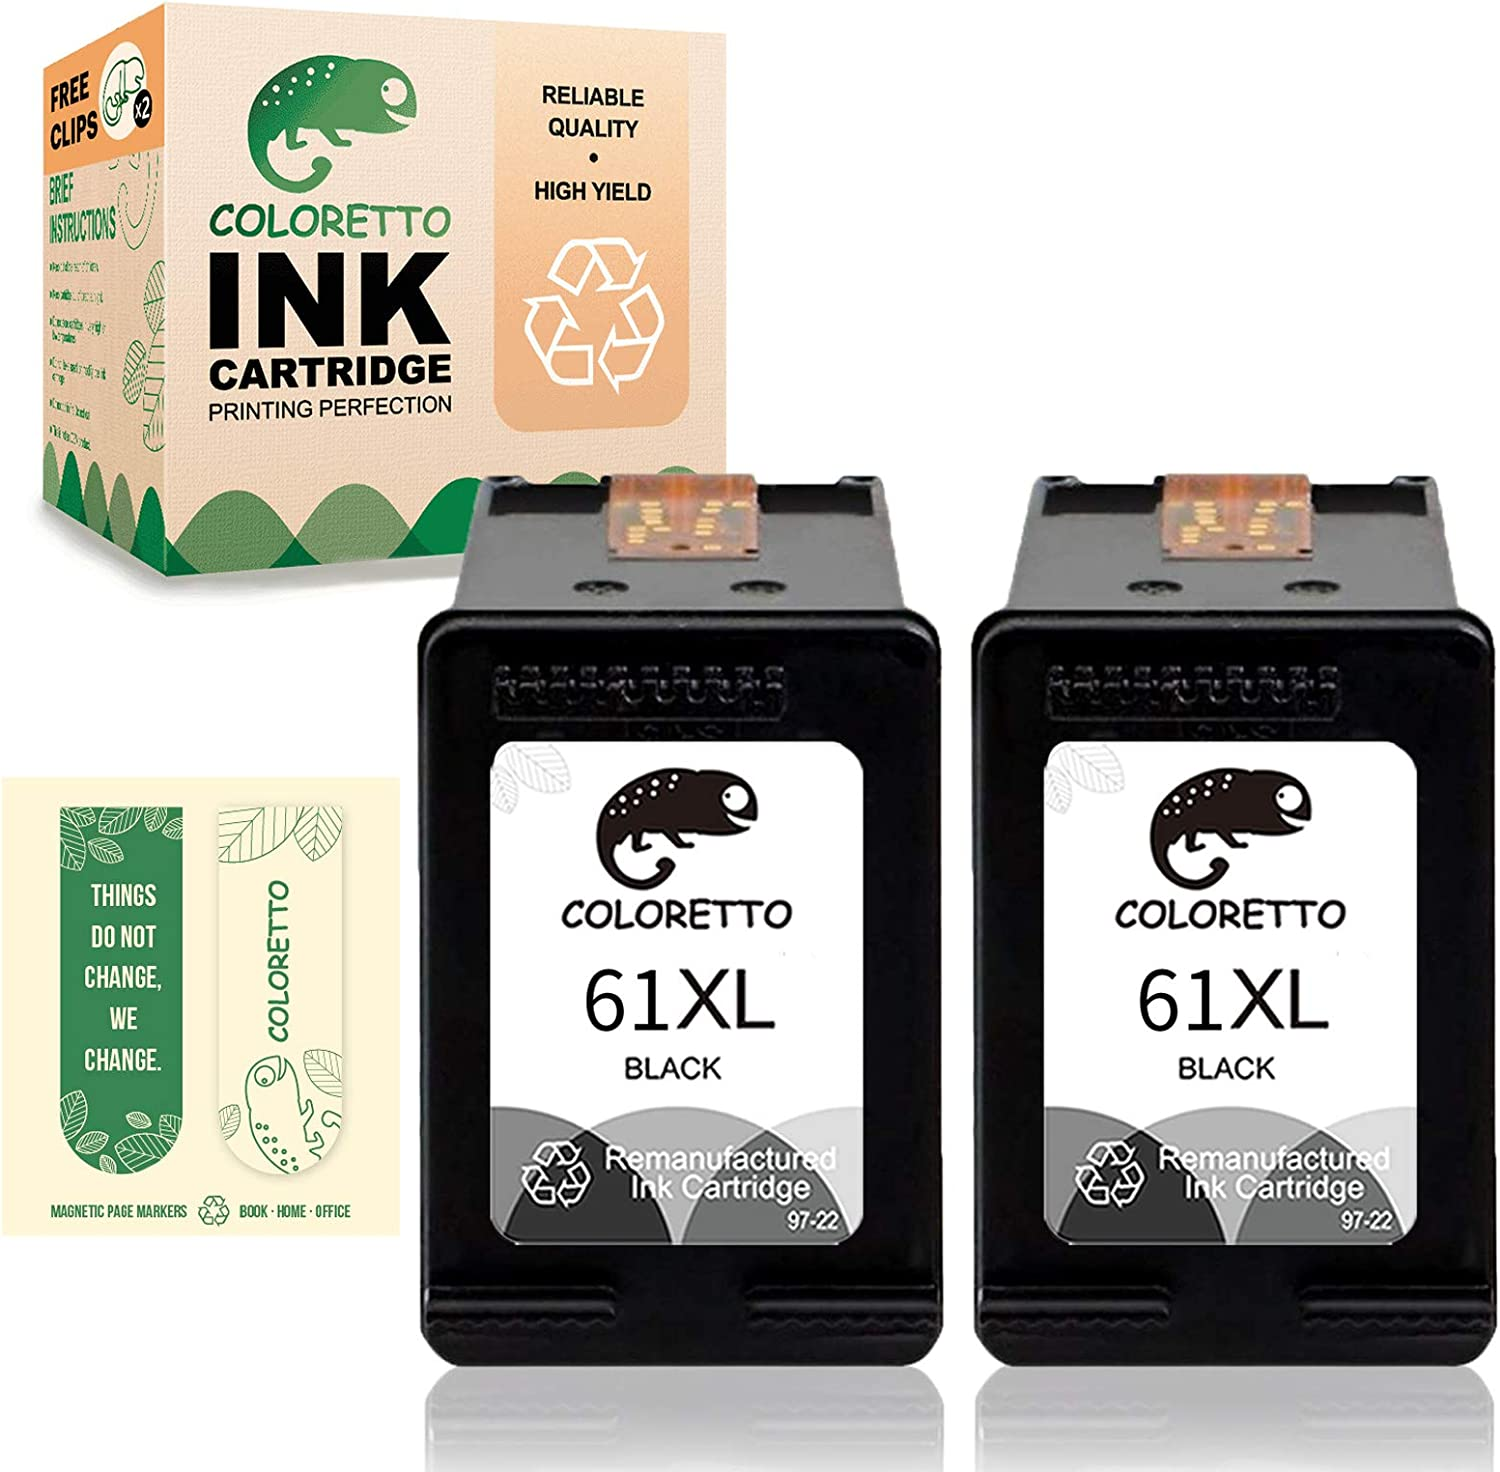 Coloretto Remanufactured Printer Ink Cartridge Replacement for HP 61XL forDeskjet 1000 1010 1012 1014 1050 1050A 1051 1055 (Special Edition Includes 2 Bookmarks) (2Black) Combo Pack